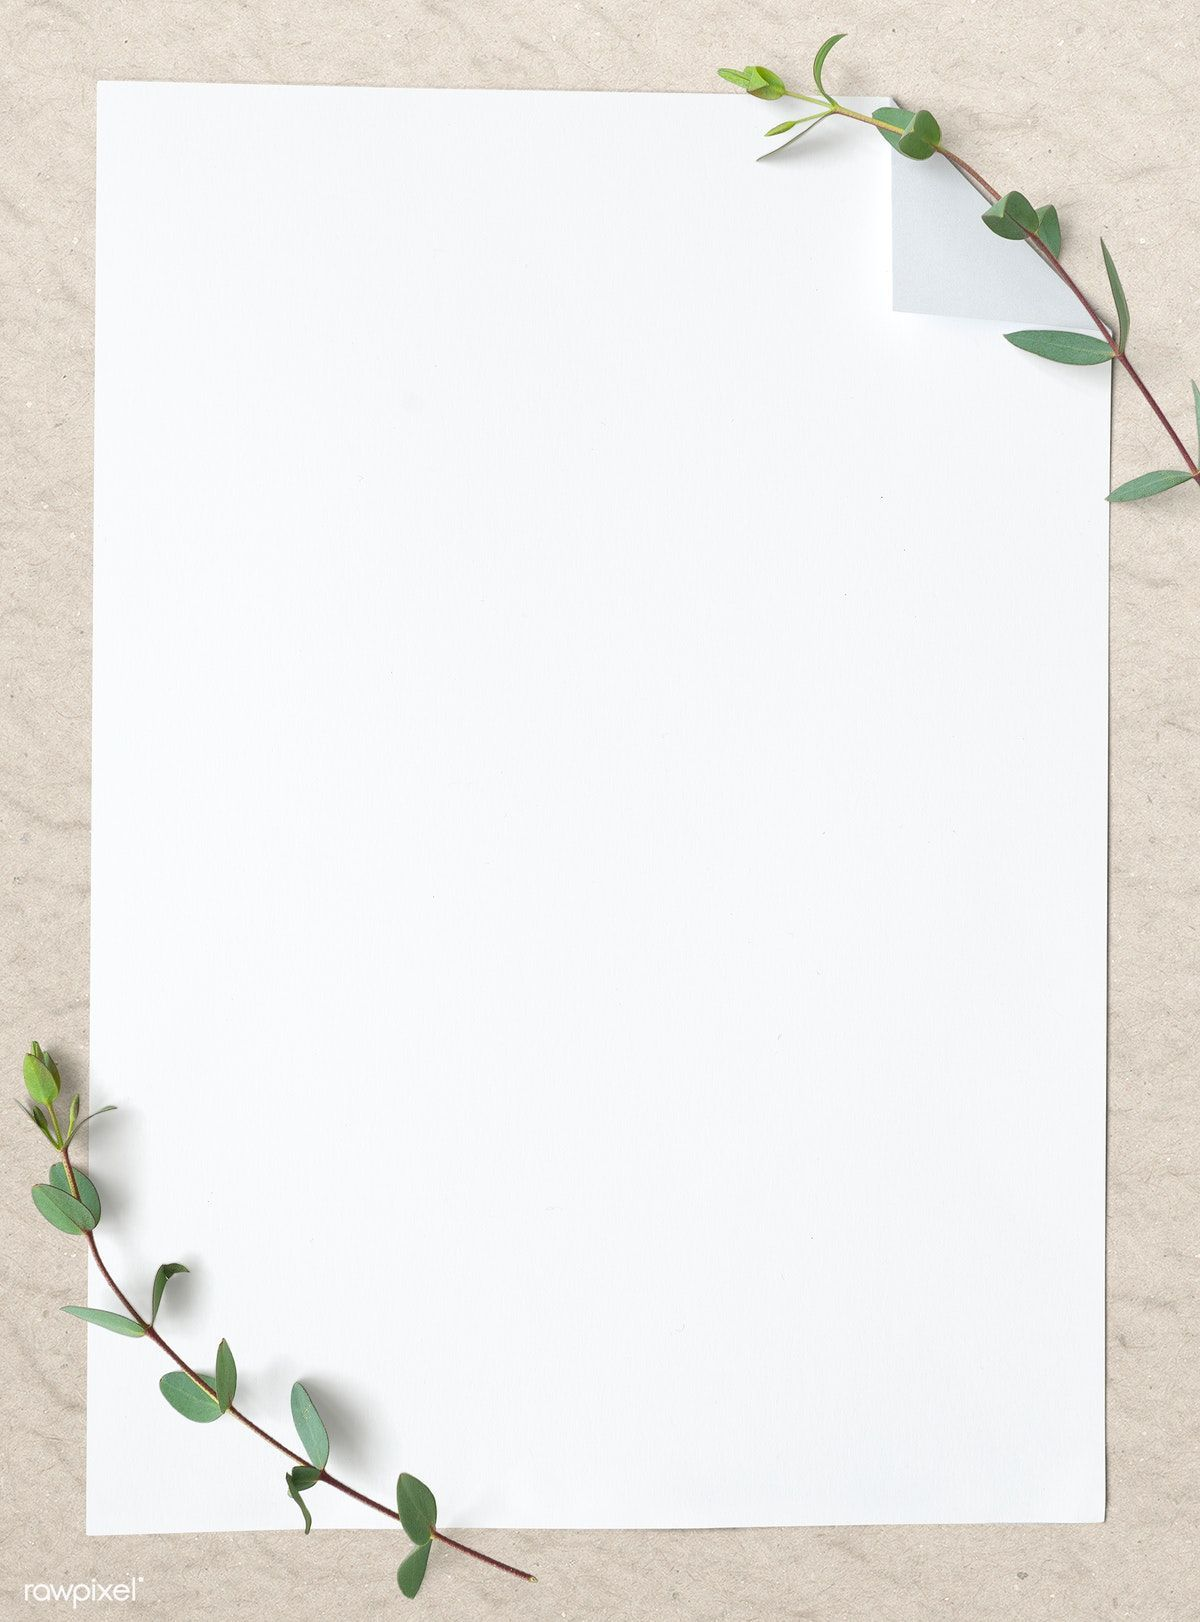 Download Premium Psd Of Blank Plain White Paper Template 1201907 Blank Download Paper Plain Premium Psd T Arkaplan Tasarimlari Cerceve Poster Tasarimlari